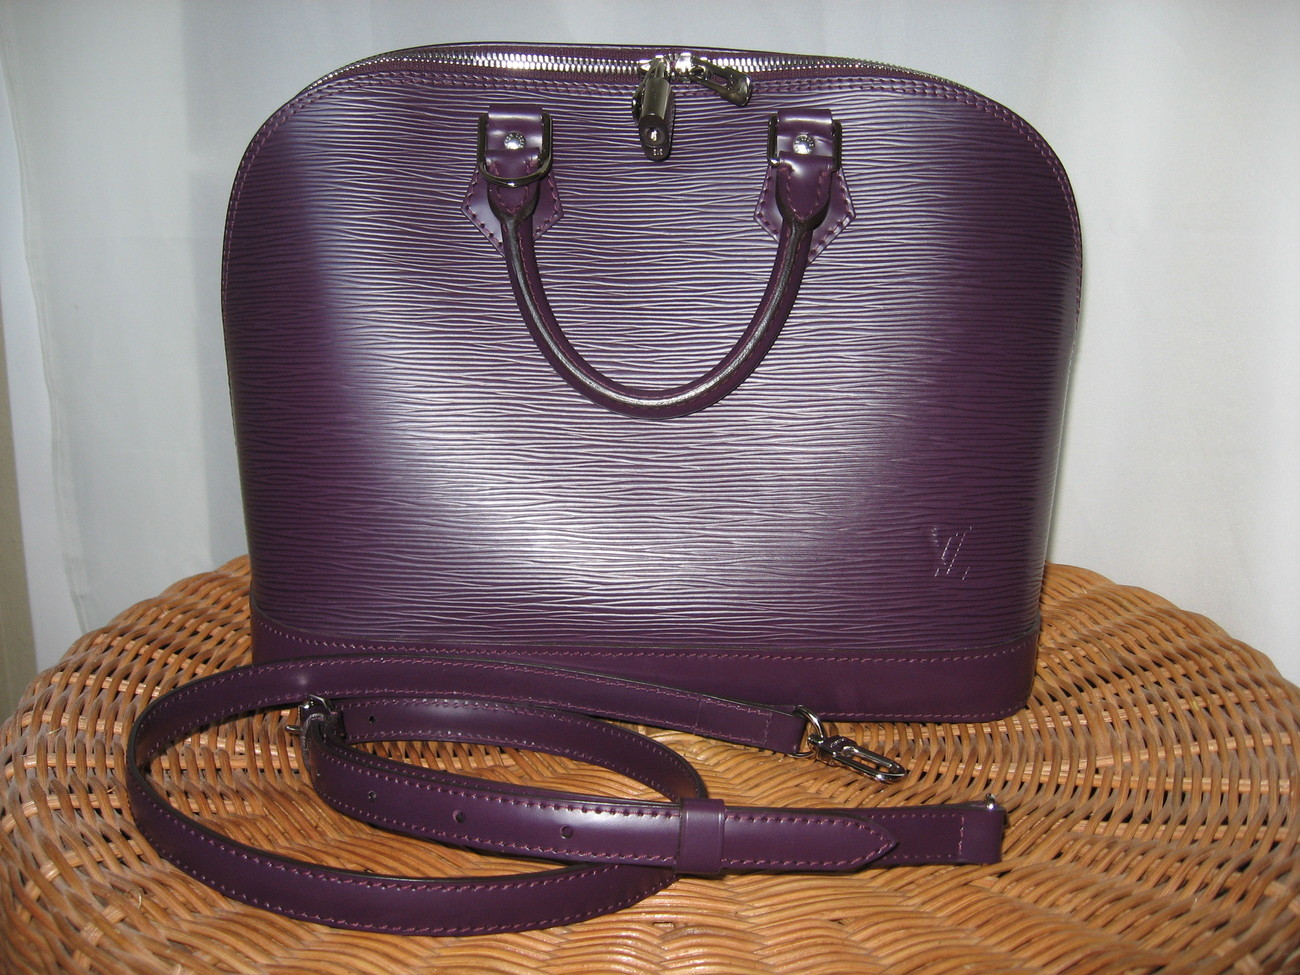 Primary image for Louis Vuitton Alma - Epi Leather - Cassis